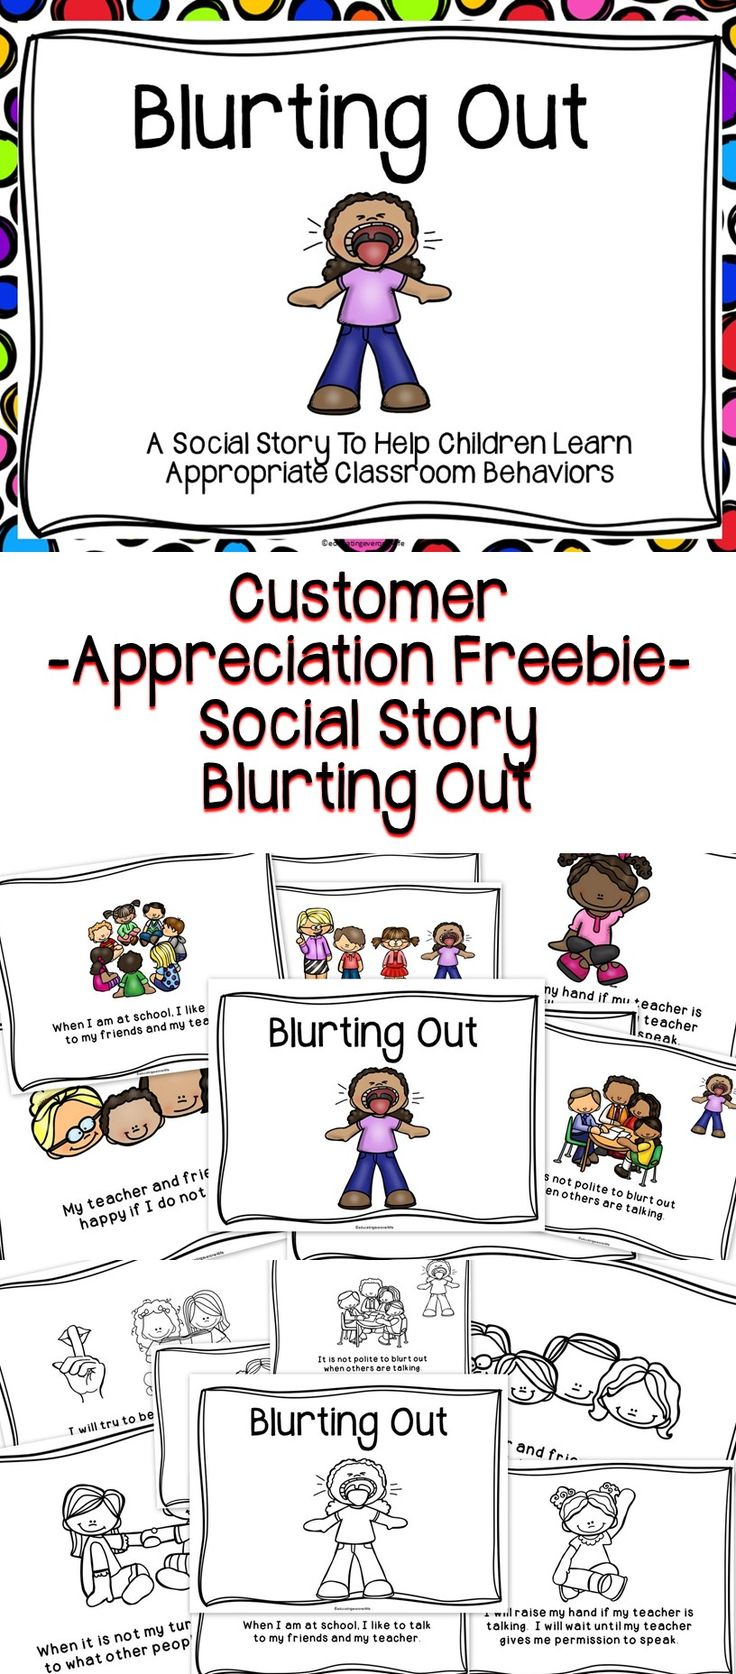 A Customer Appreciation FREEBIE - A social story to help children learn positive classroom behaviors.